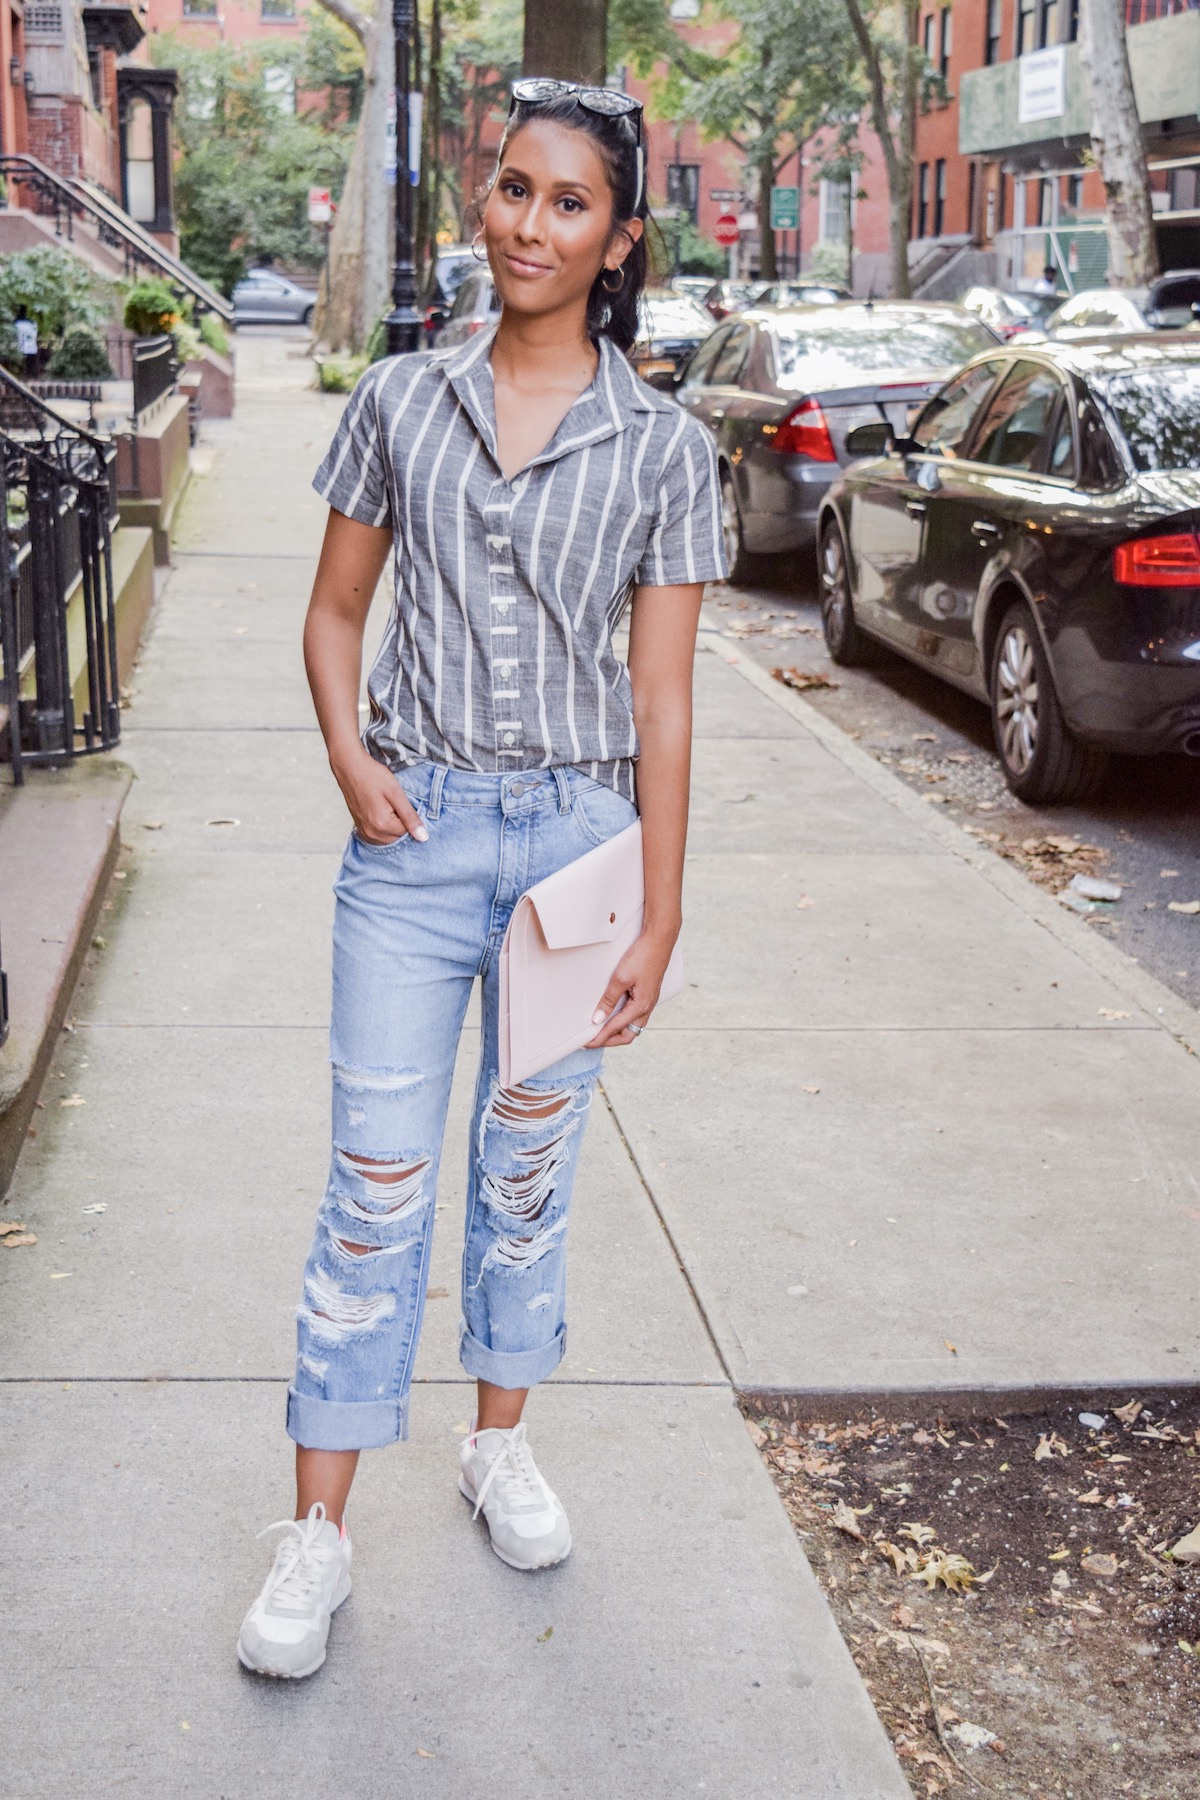 Jeans and button down // A Week Of Conscious Trend-Forward Outfits With Sabrina Ramkhelawan From Flaunt Your Fancy on The Good Trade